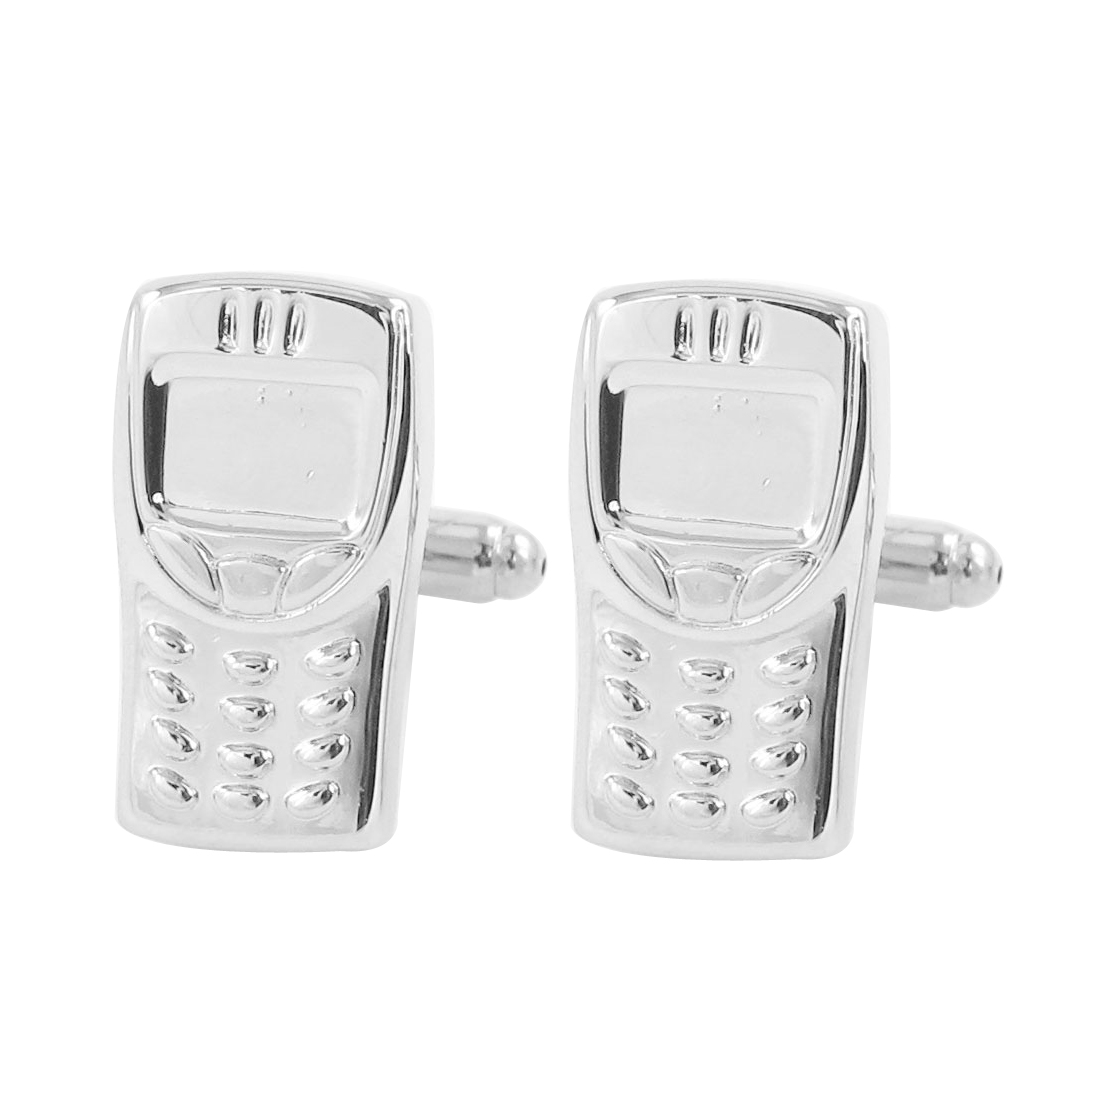 Pair Silver Tone Metal Cell Phone Design Cufflinks for Groom Man